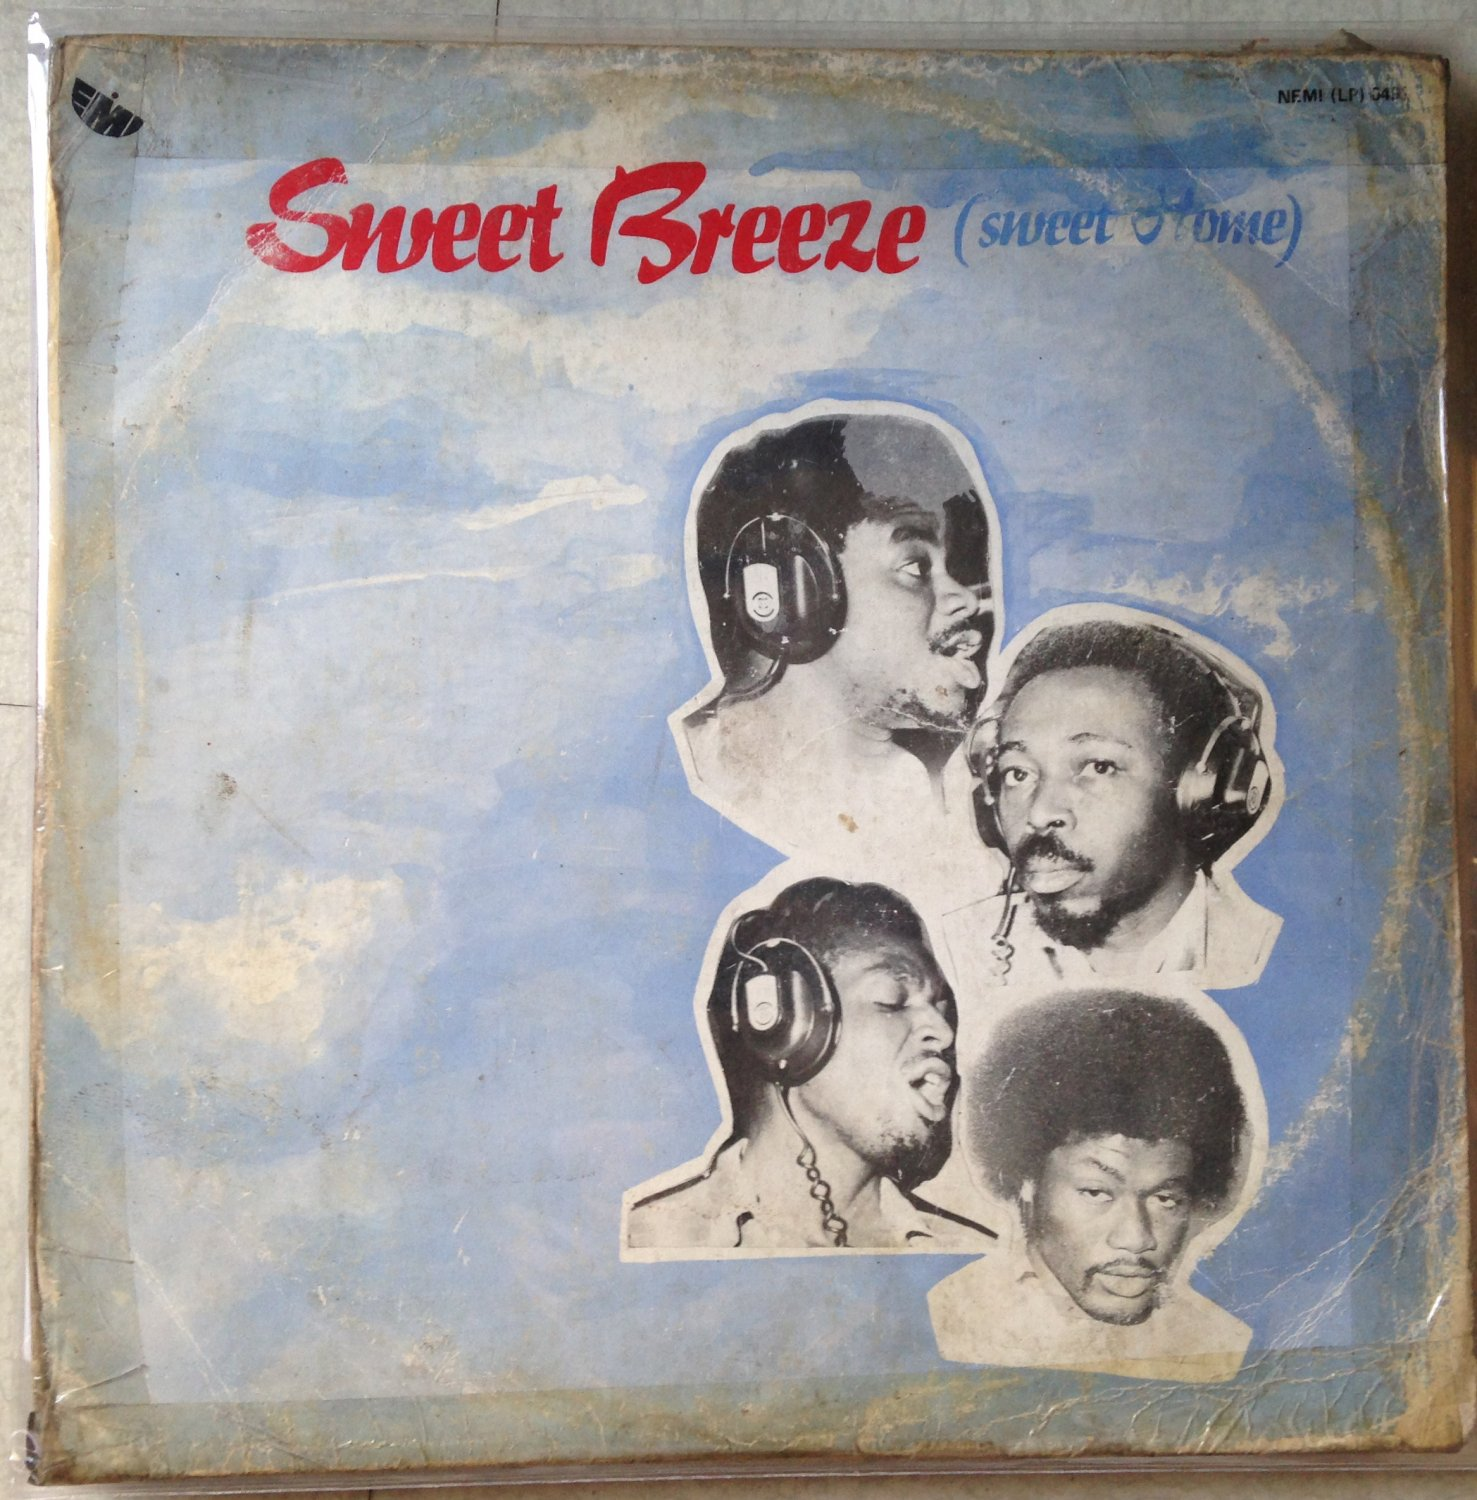 SWEET BREEZE LP sweet home NIGERIA AFRO FUNK mp3 LISTEN